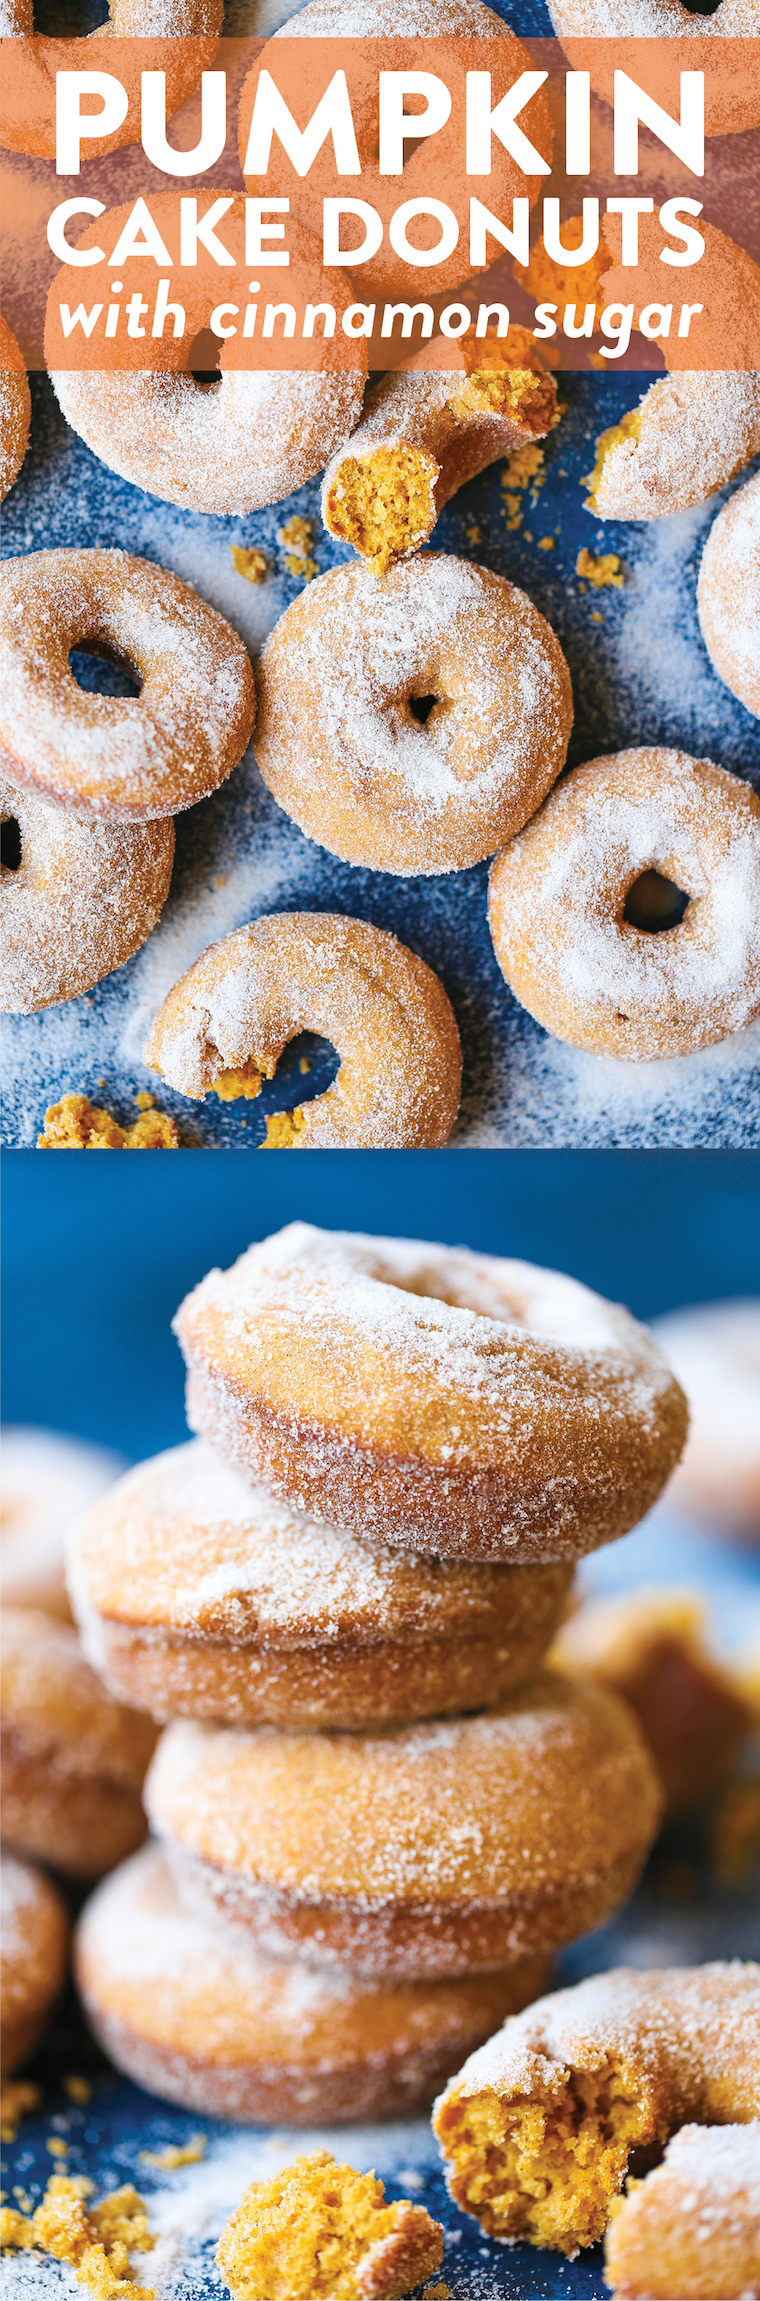 Pumpkin Cake Donuts - The MOST HEAVENLY pumpkin donuts! So moist, they just melt-in-your mouth! Coated in melted butter and cinnamon sugar. It's perfection!